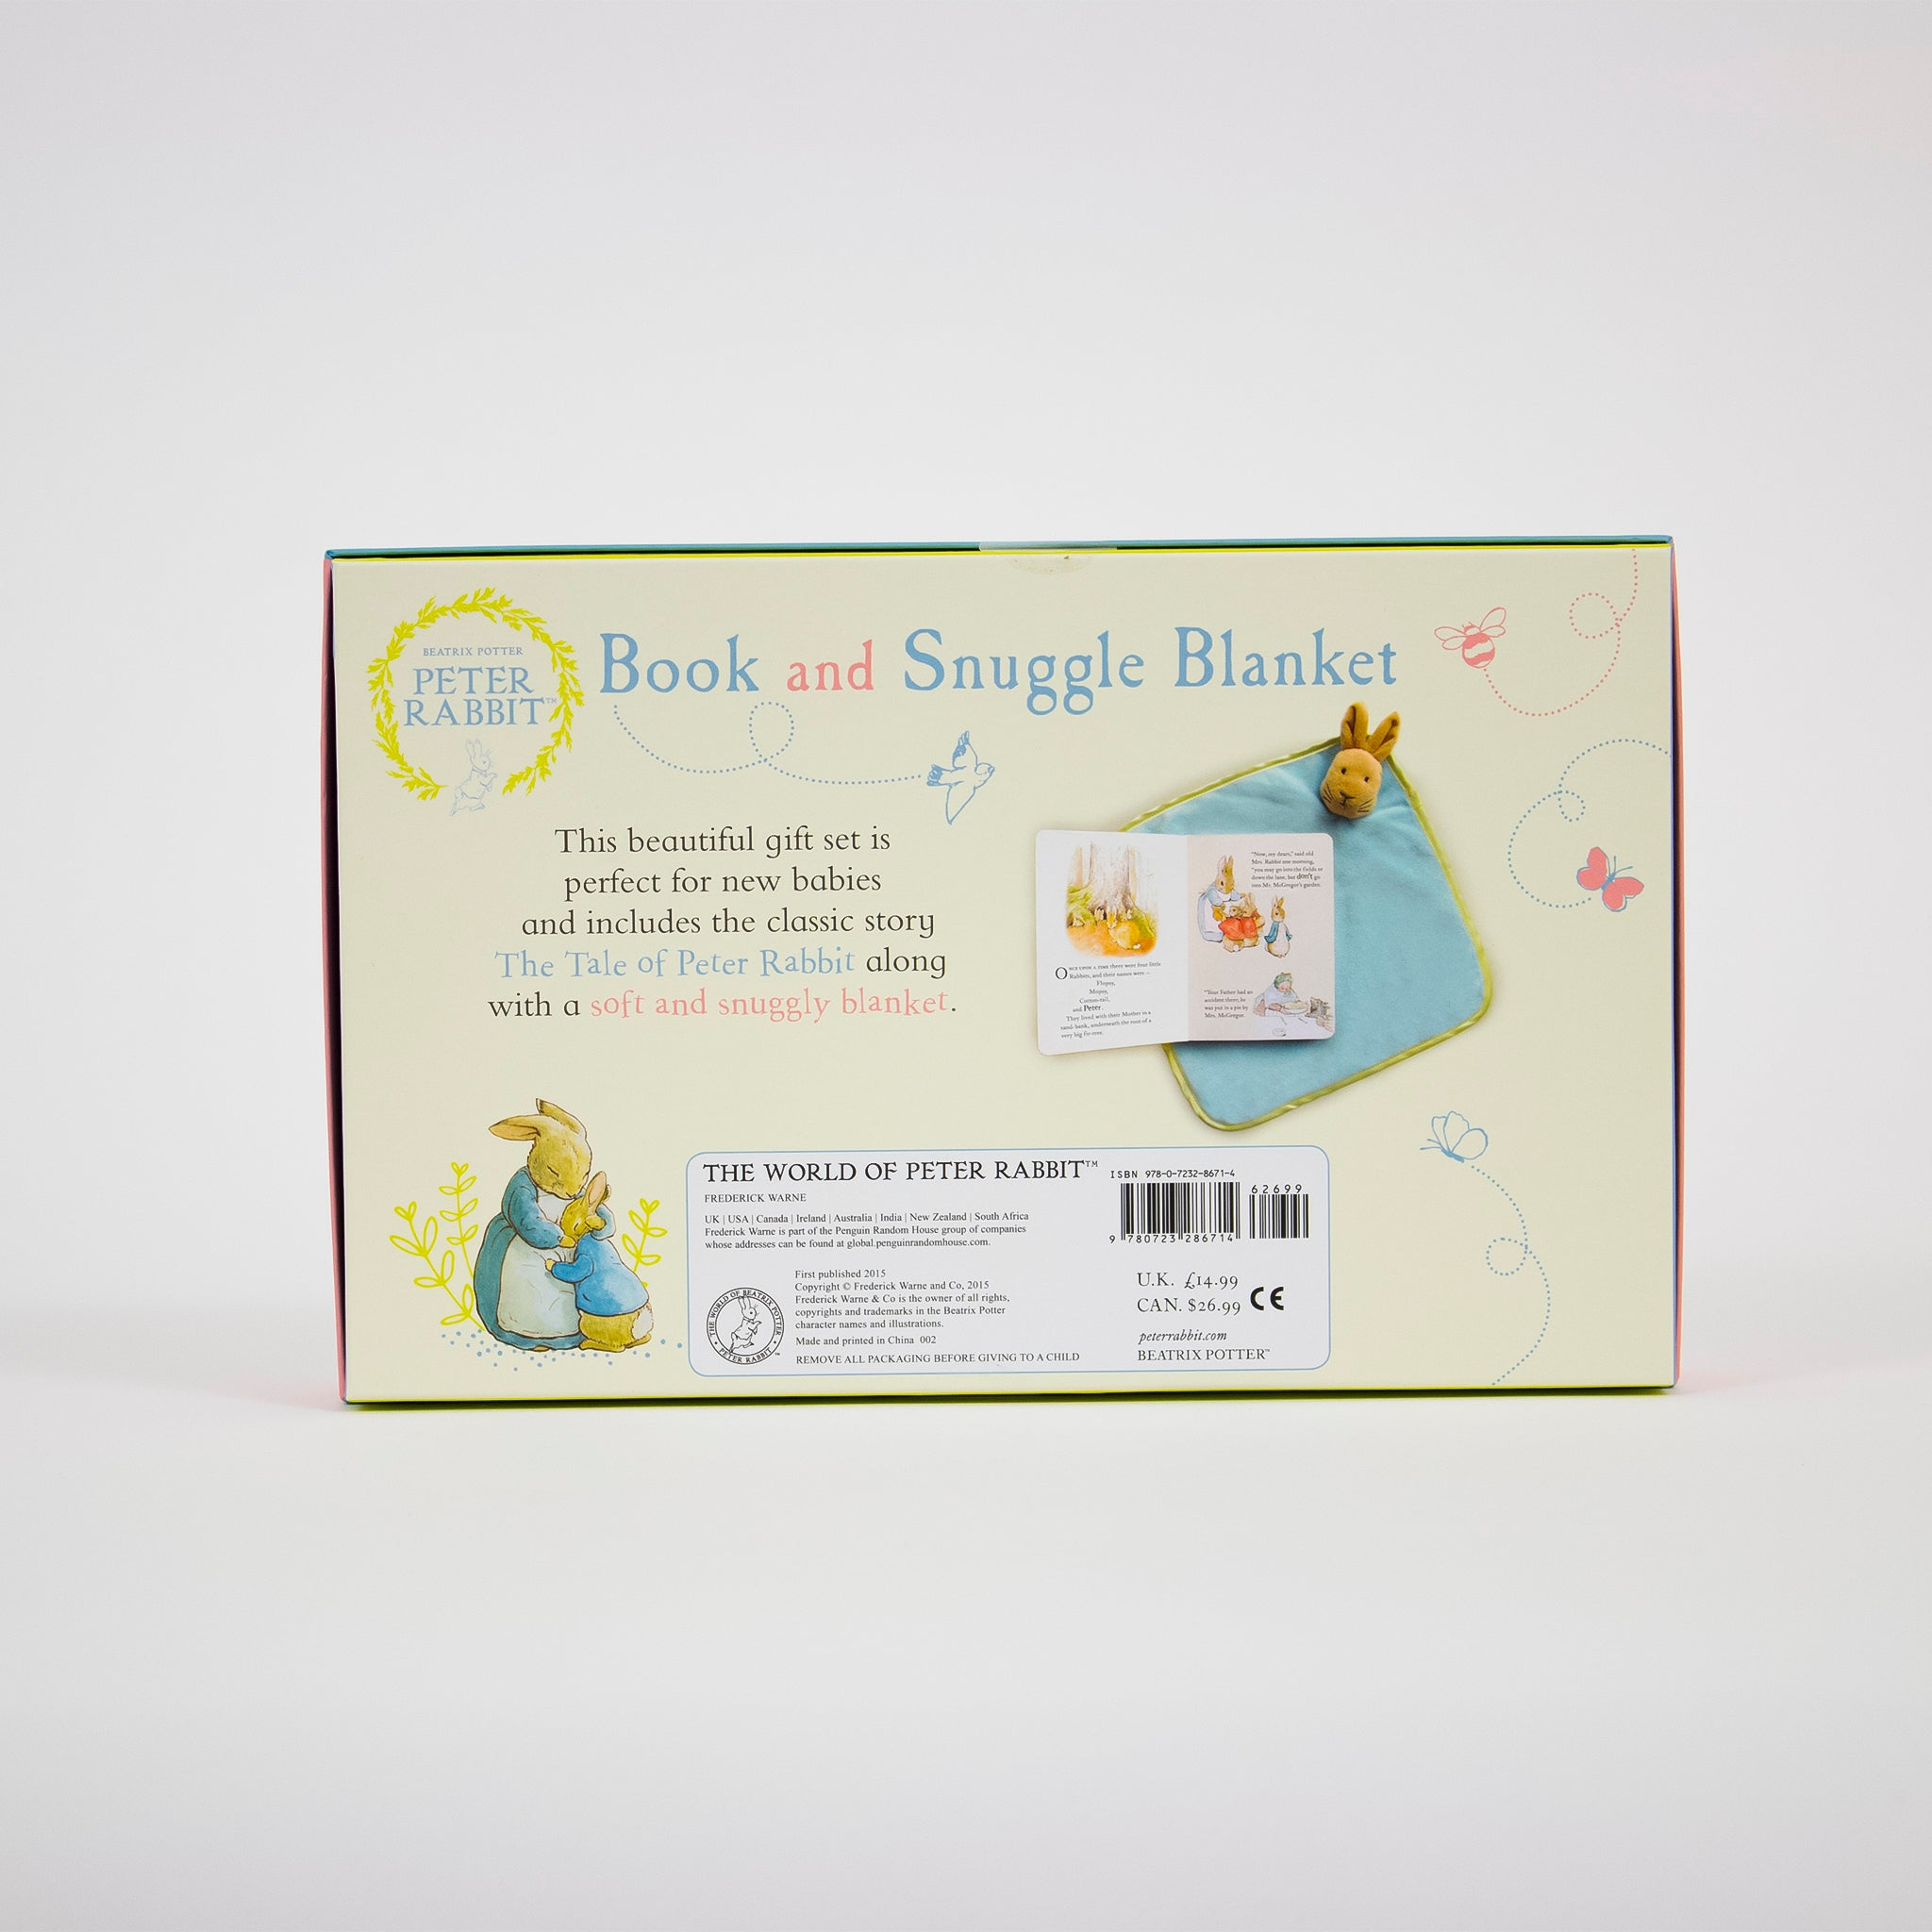 Peter Rabbit - Book & Snuggle Blanket